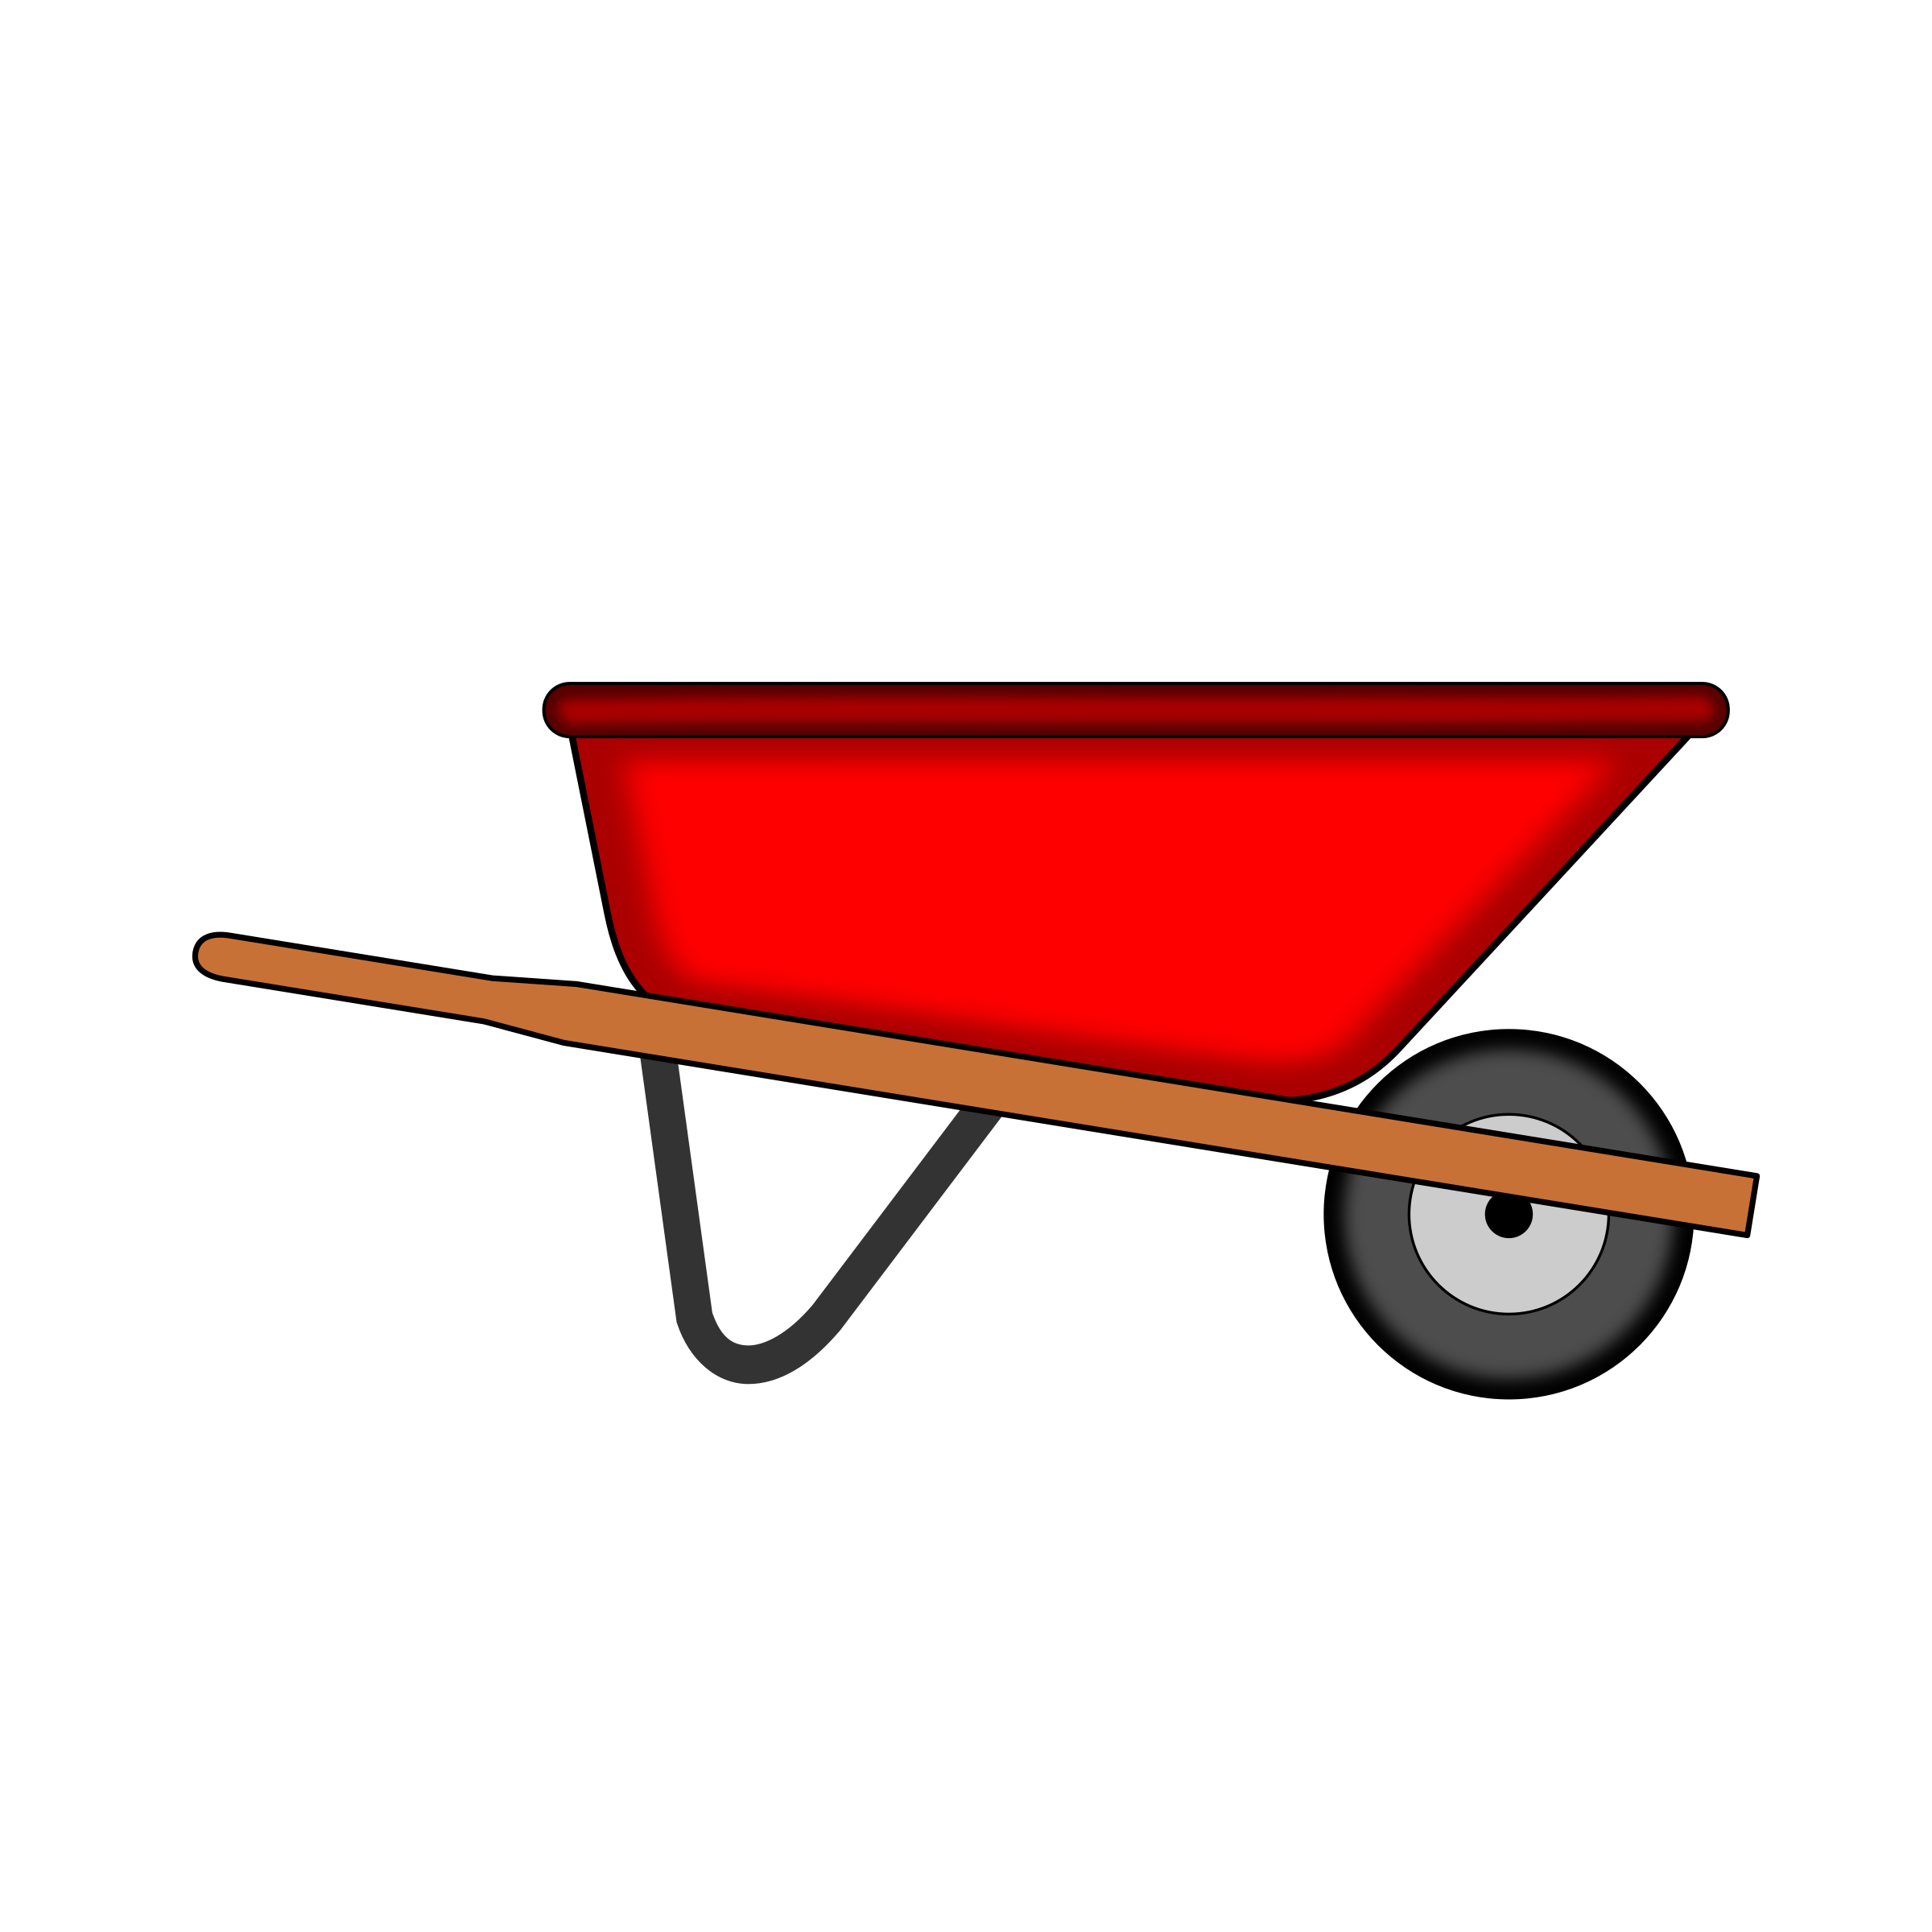 vector black and white library Frames illustrations red icons. Wheelbarrow clipart transparent background